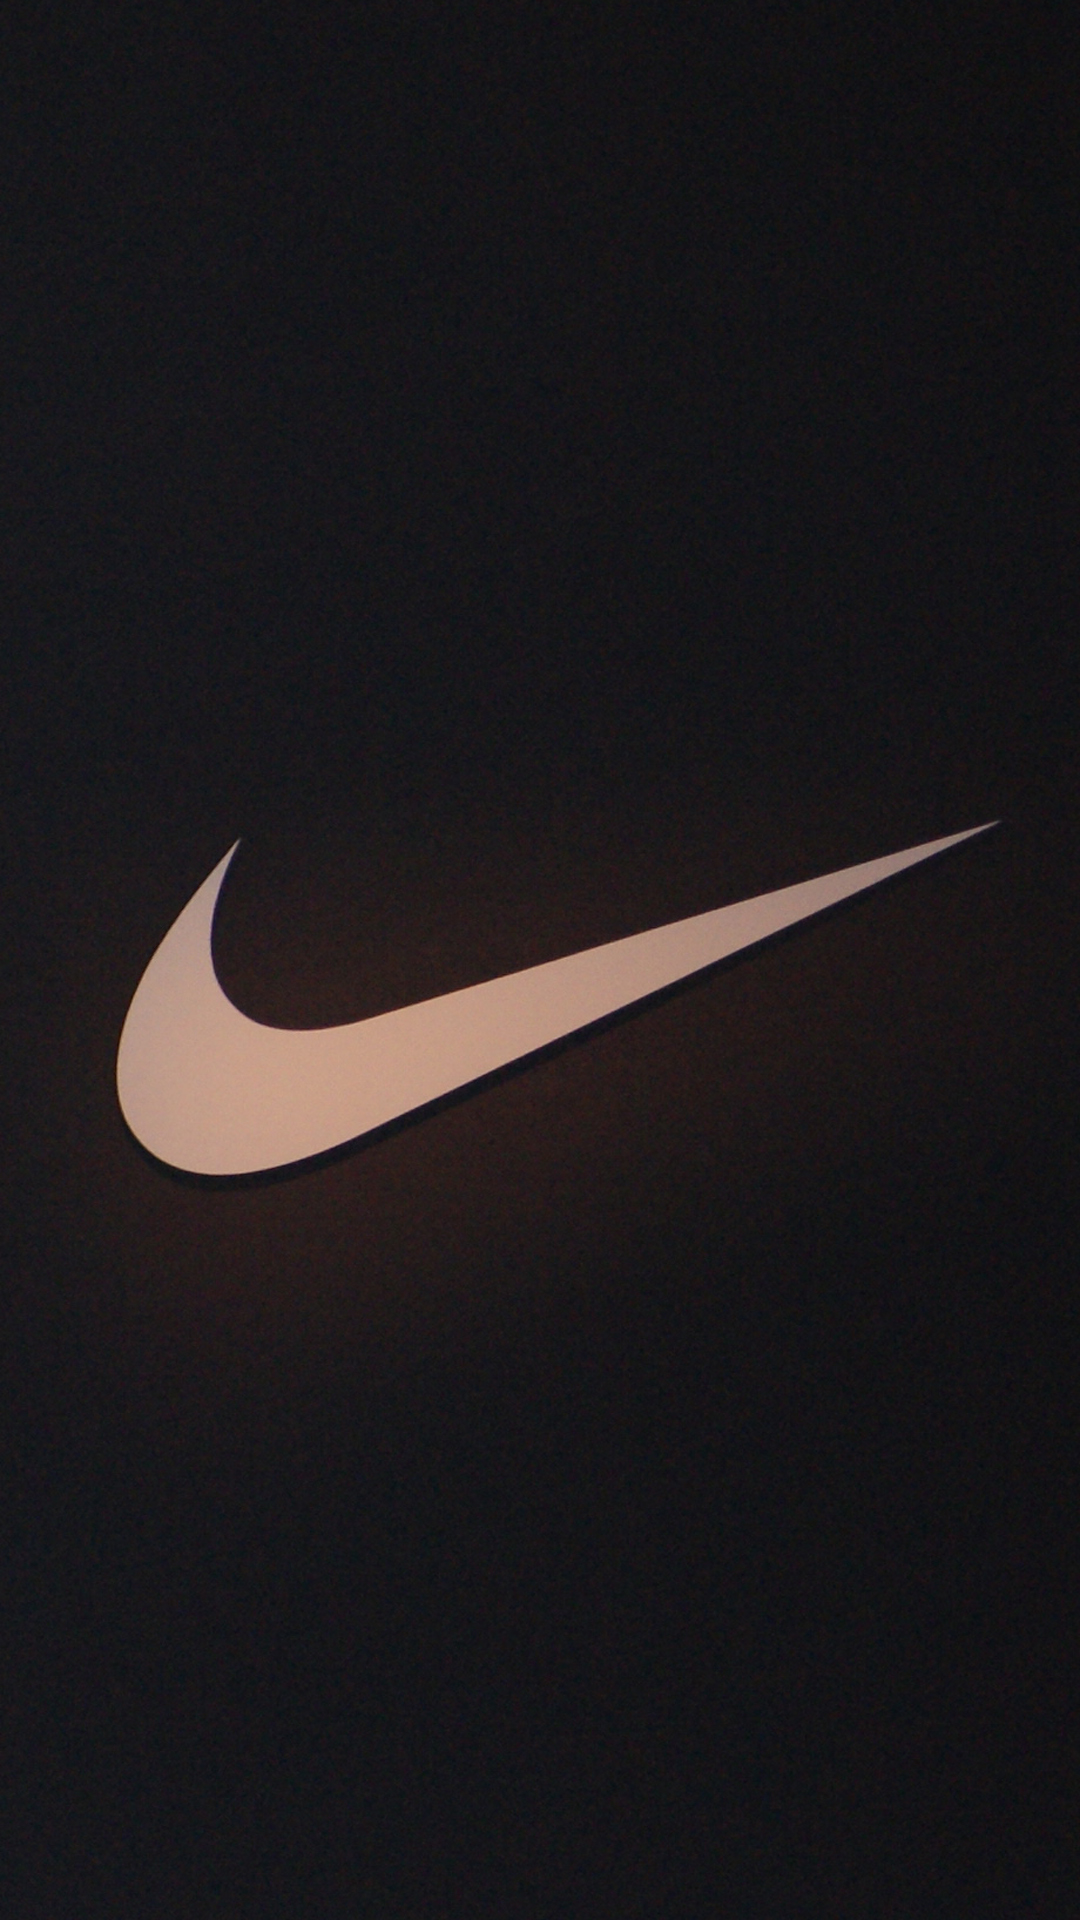 Free Download Nike Phone Backgrounds Nike Logo Htc One